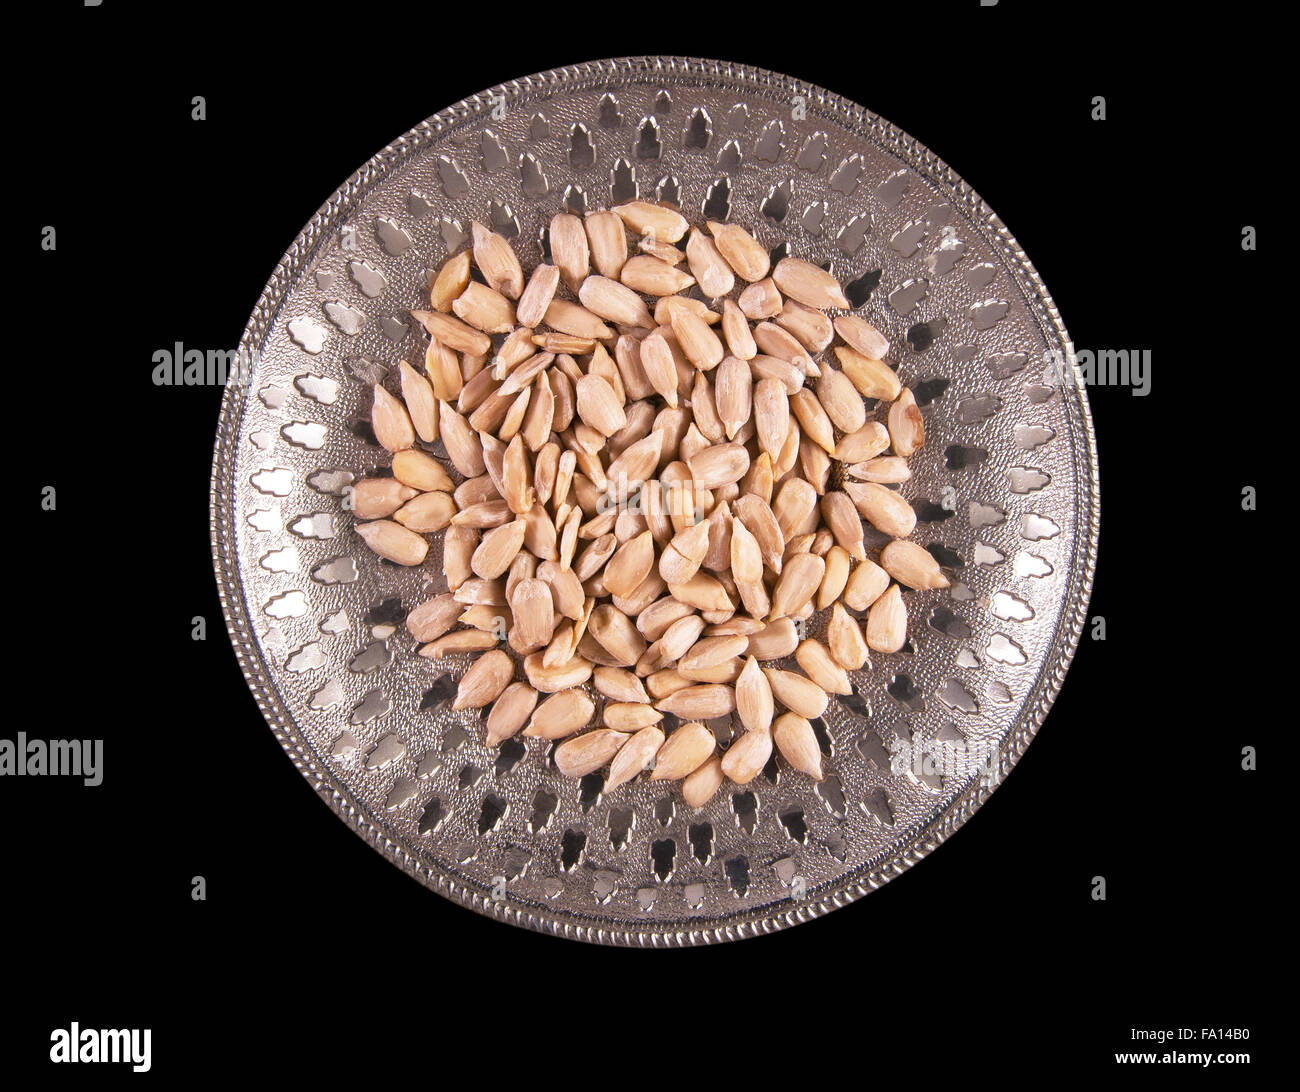 Sunflower seeds on the plate - Stock Image